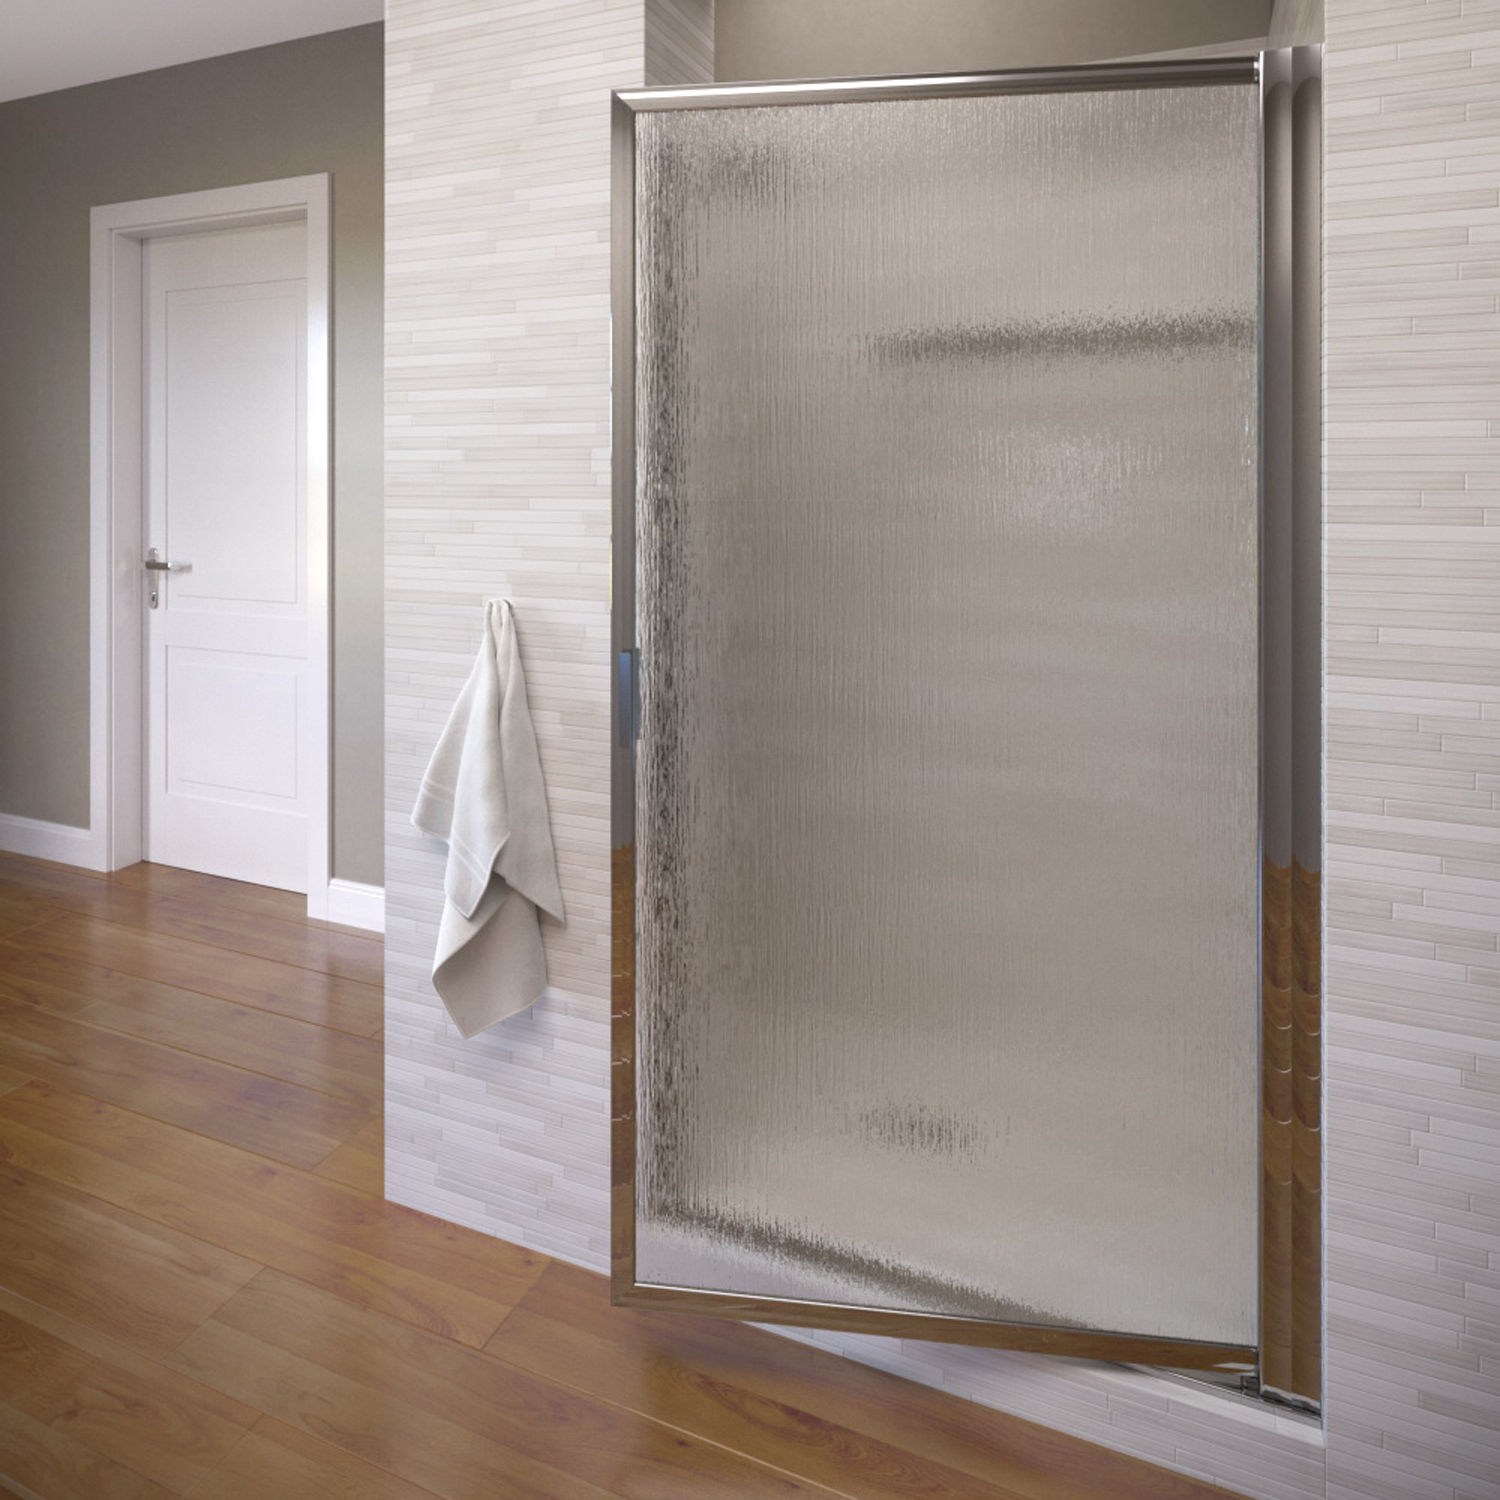 "Basco 100-10RN 36"" Deluxe Pivot Swing Door with Rain Glass - Silver"